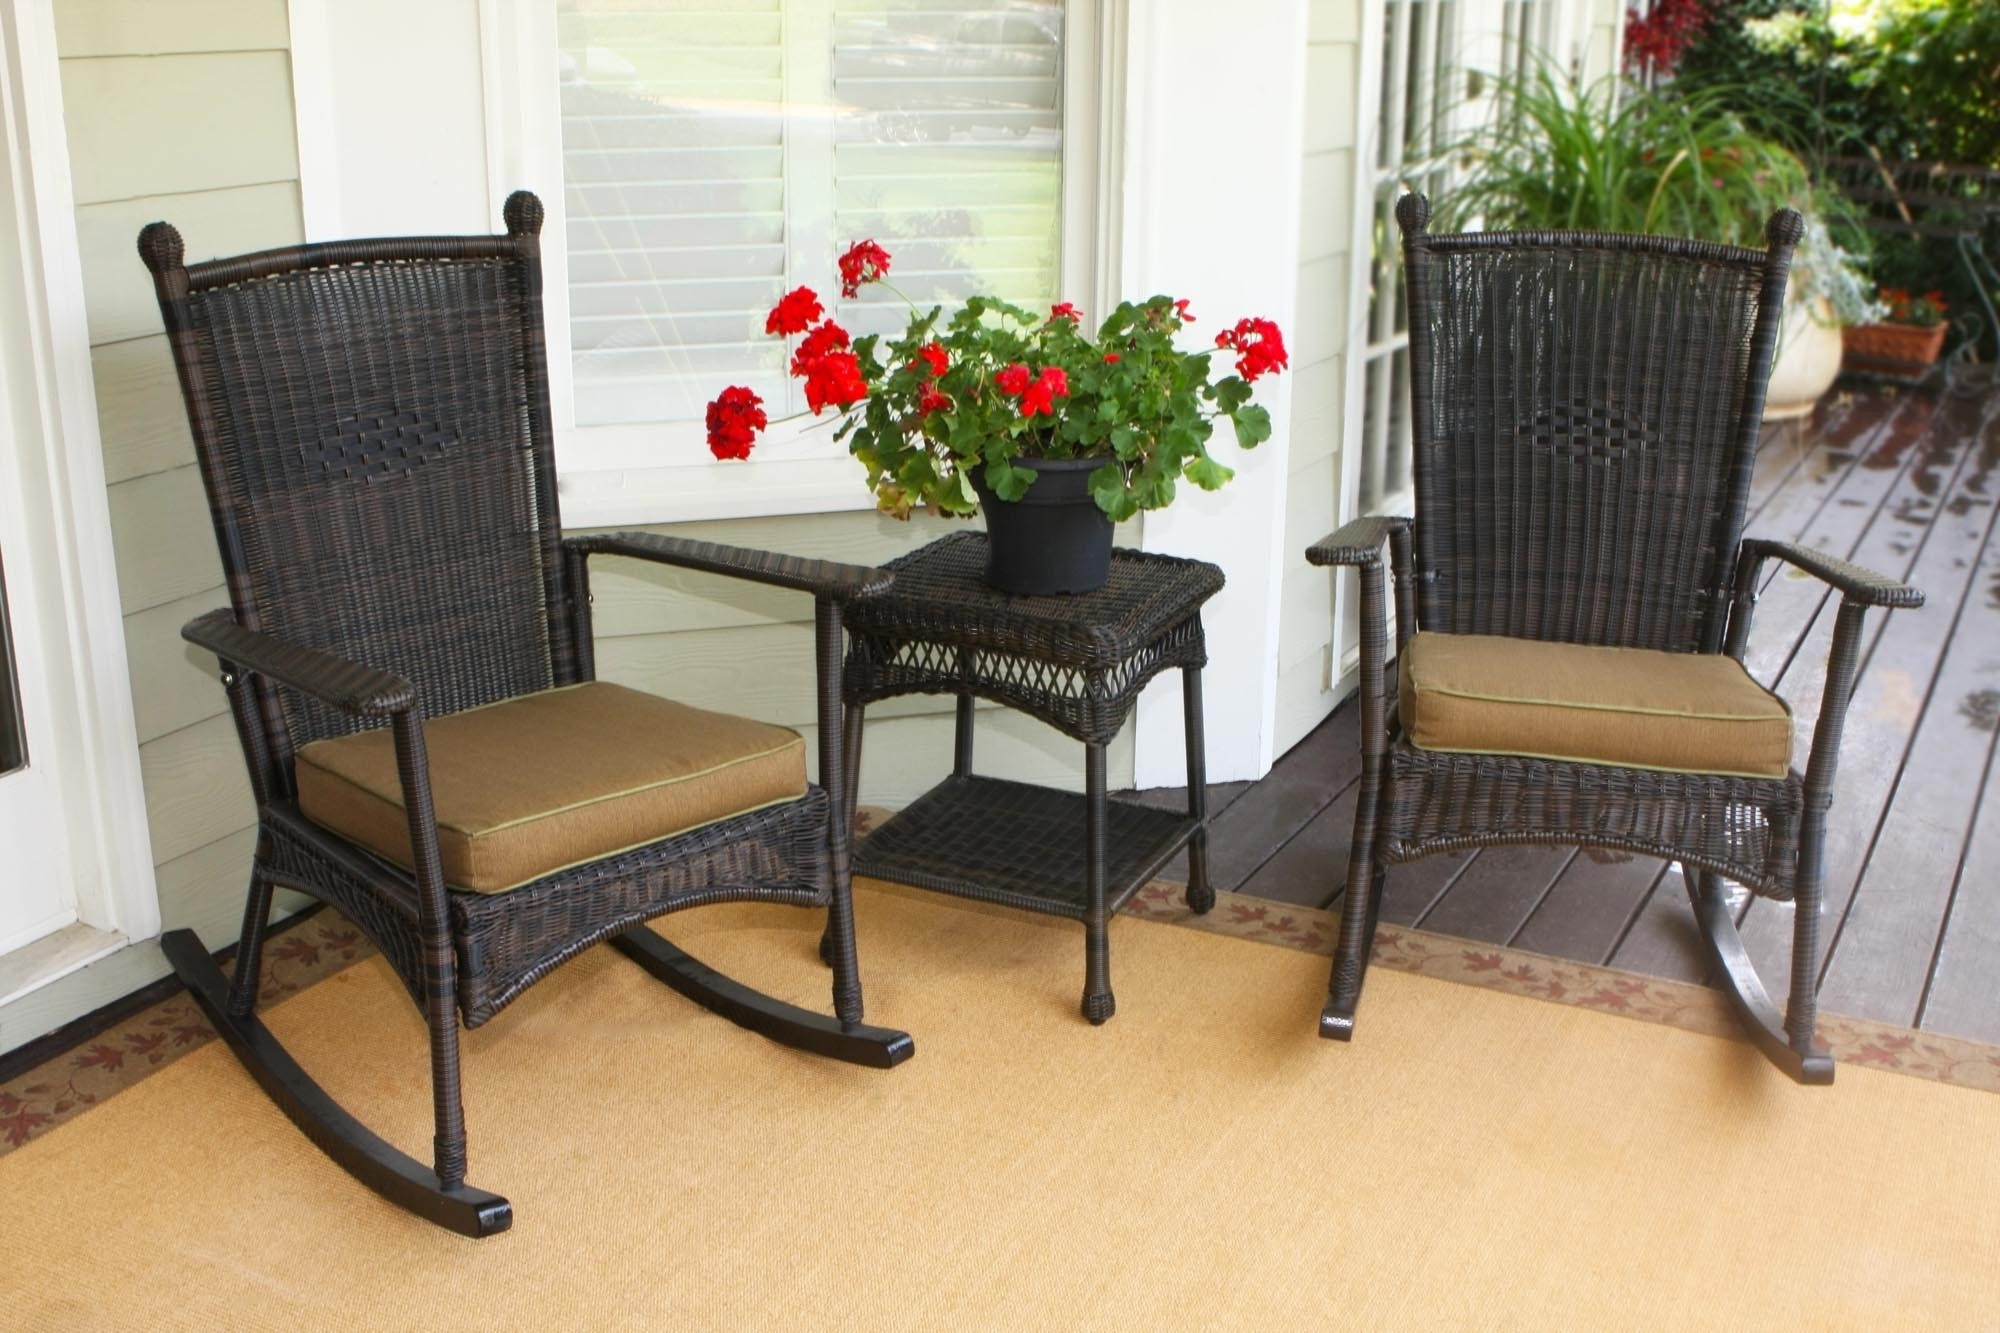 Rocking Chairs – Tortuga Outdoor Of Georgia – Alpharetta With 2018 Patio Rocking Chairs And Table (View 15 of 20)